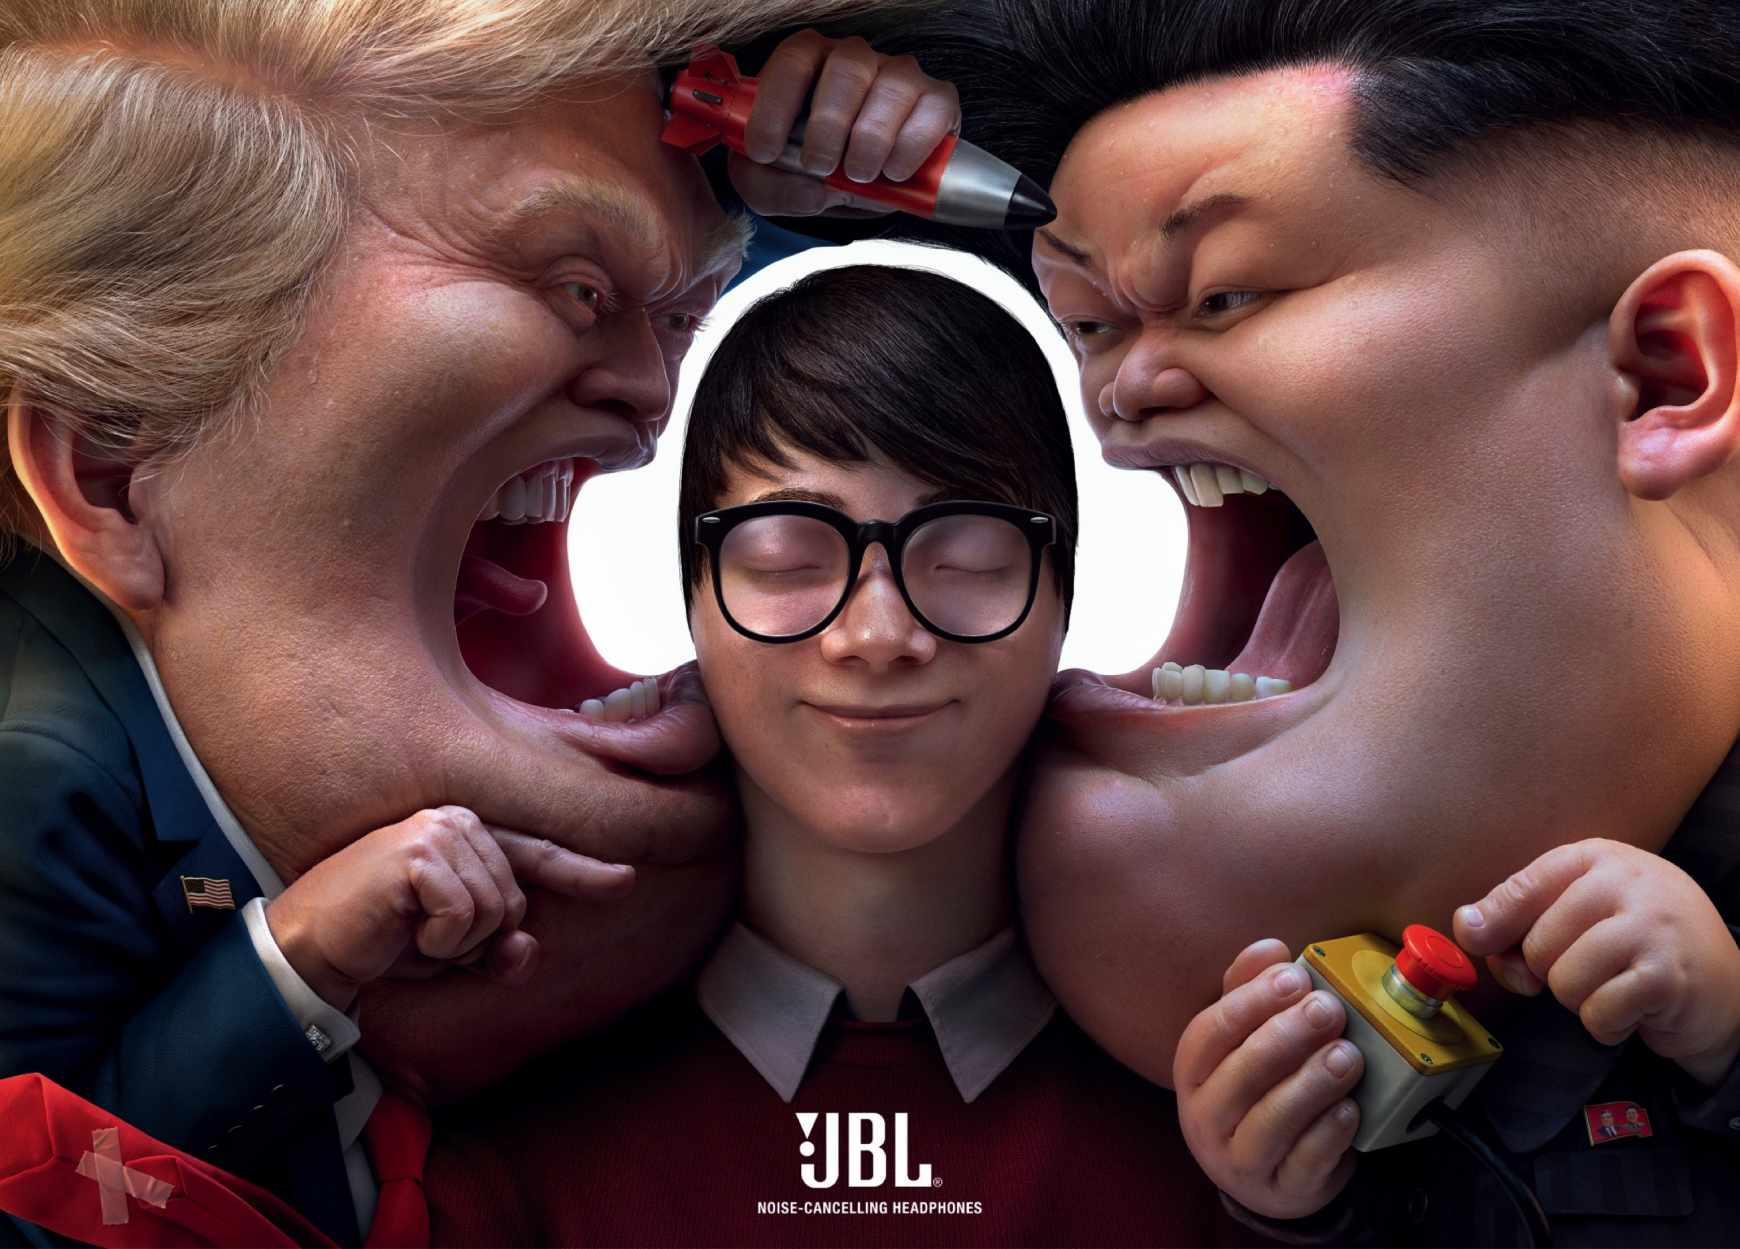 JBL Print Ad - Block out the Chaos, World Leaders